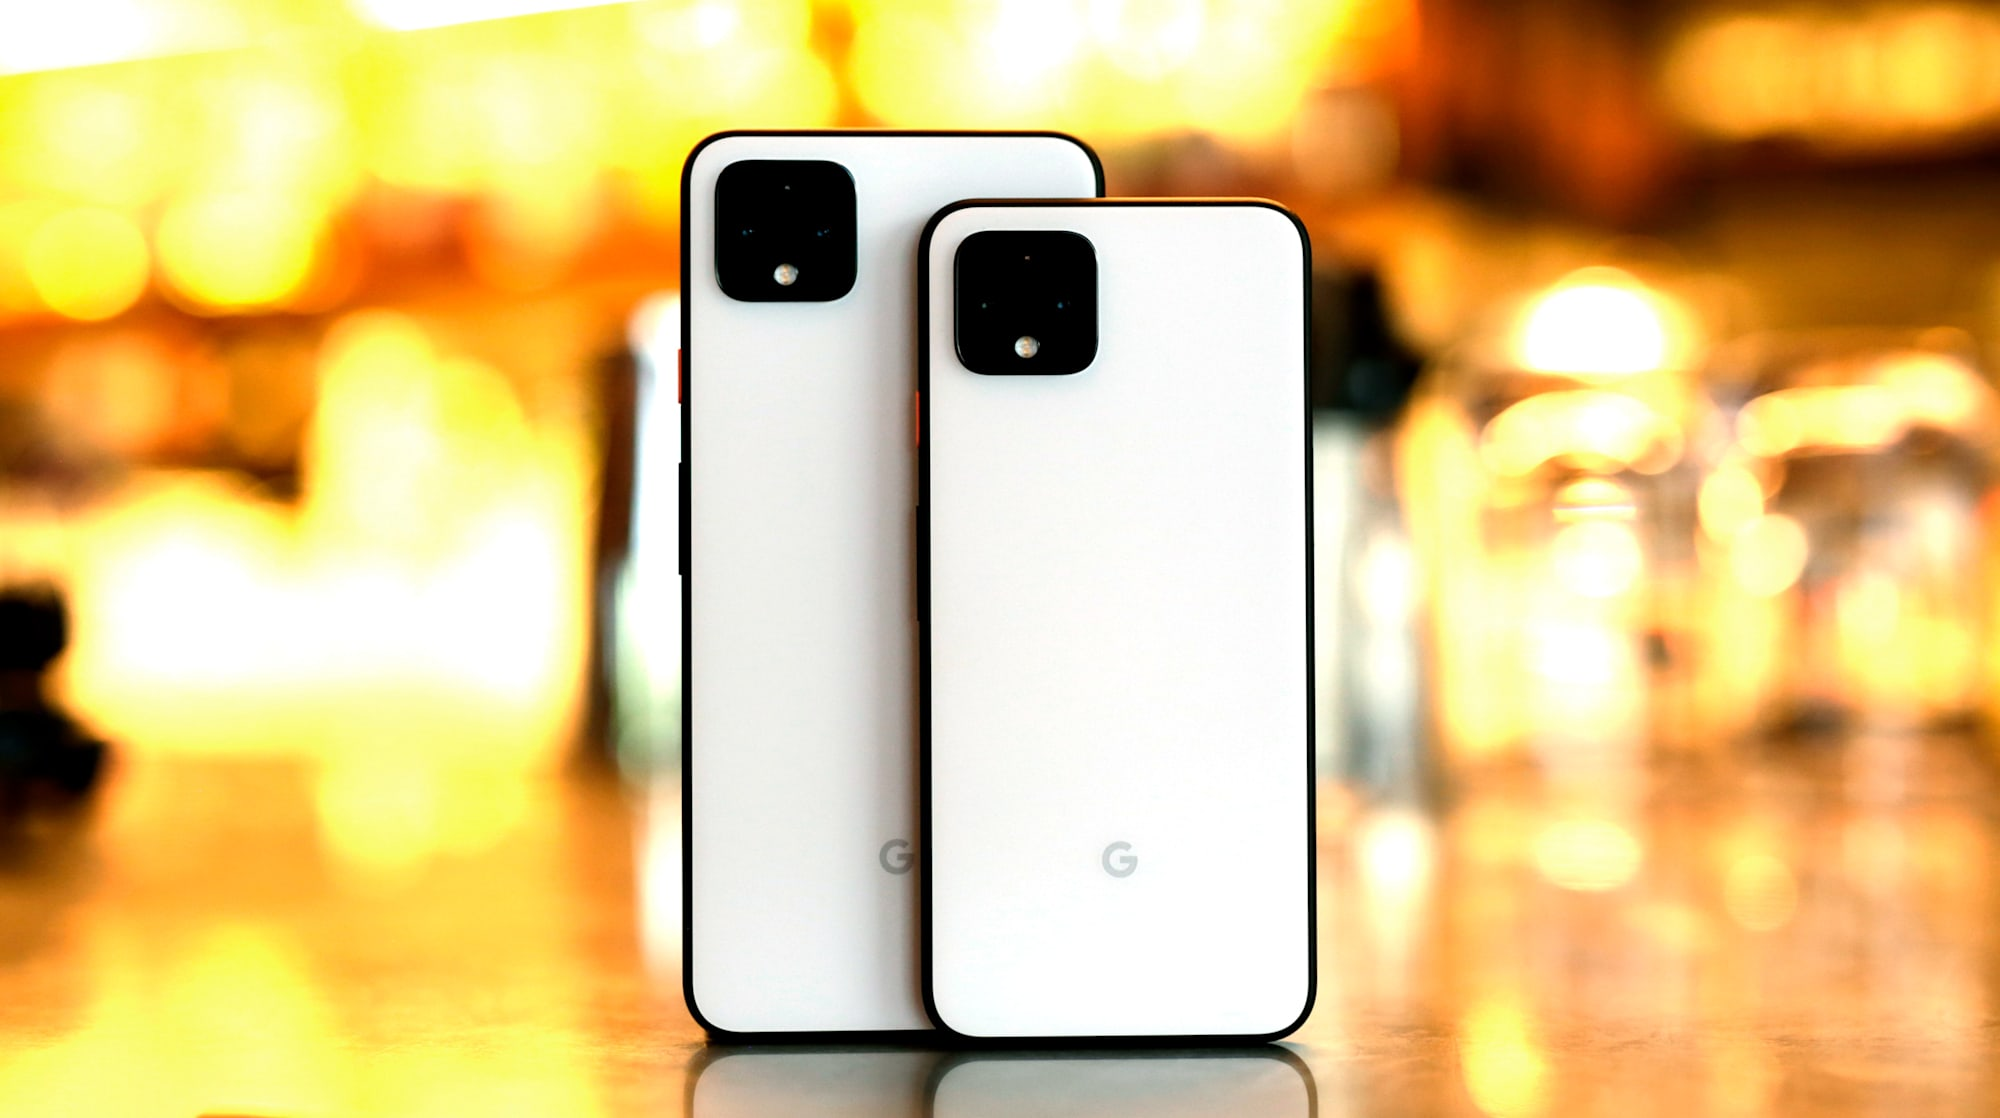 Pixel 4 and 4 XL review: A slightly flawed taste of the future